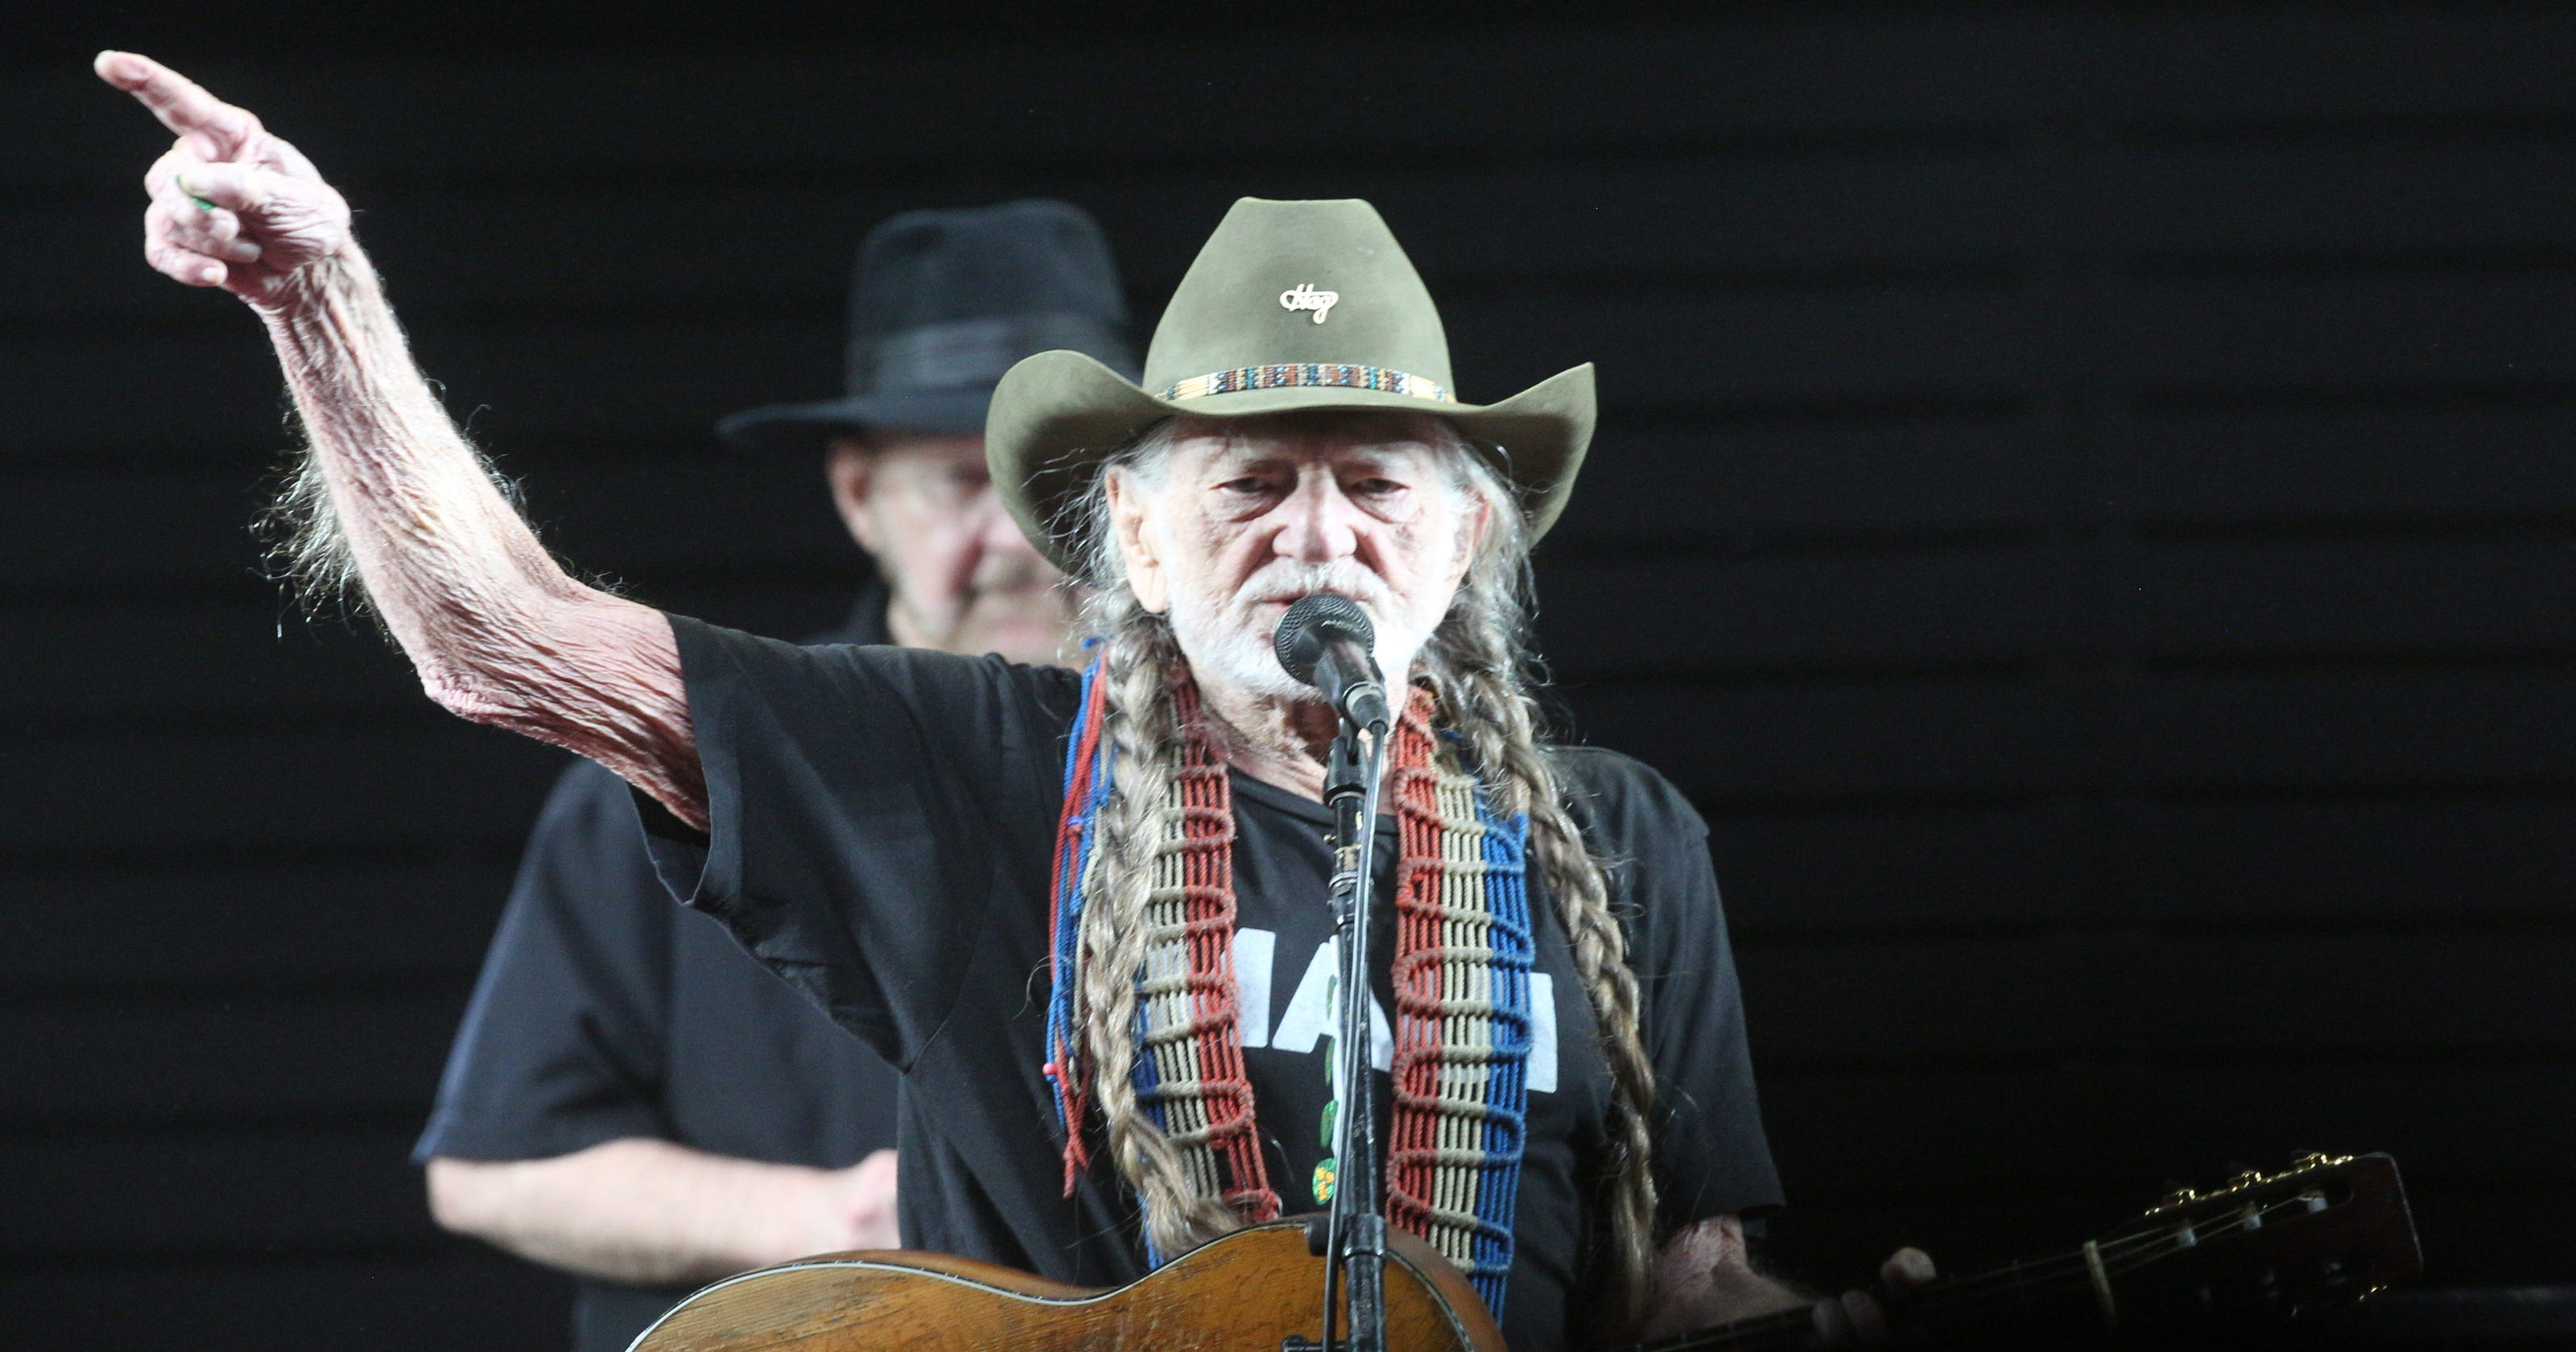 Willie Nelson had a legendary birthday party before Shania ad0d4c61ab96